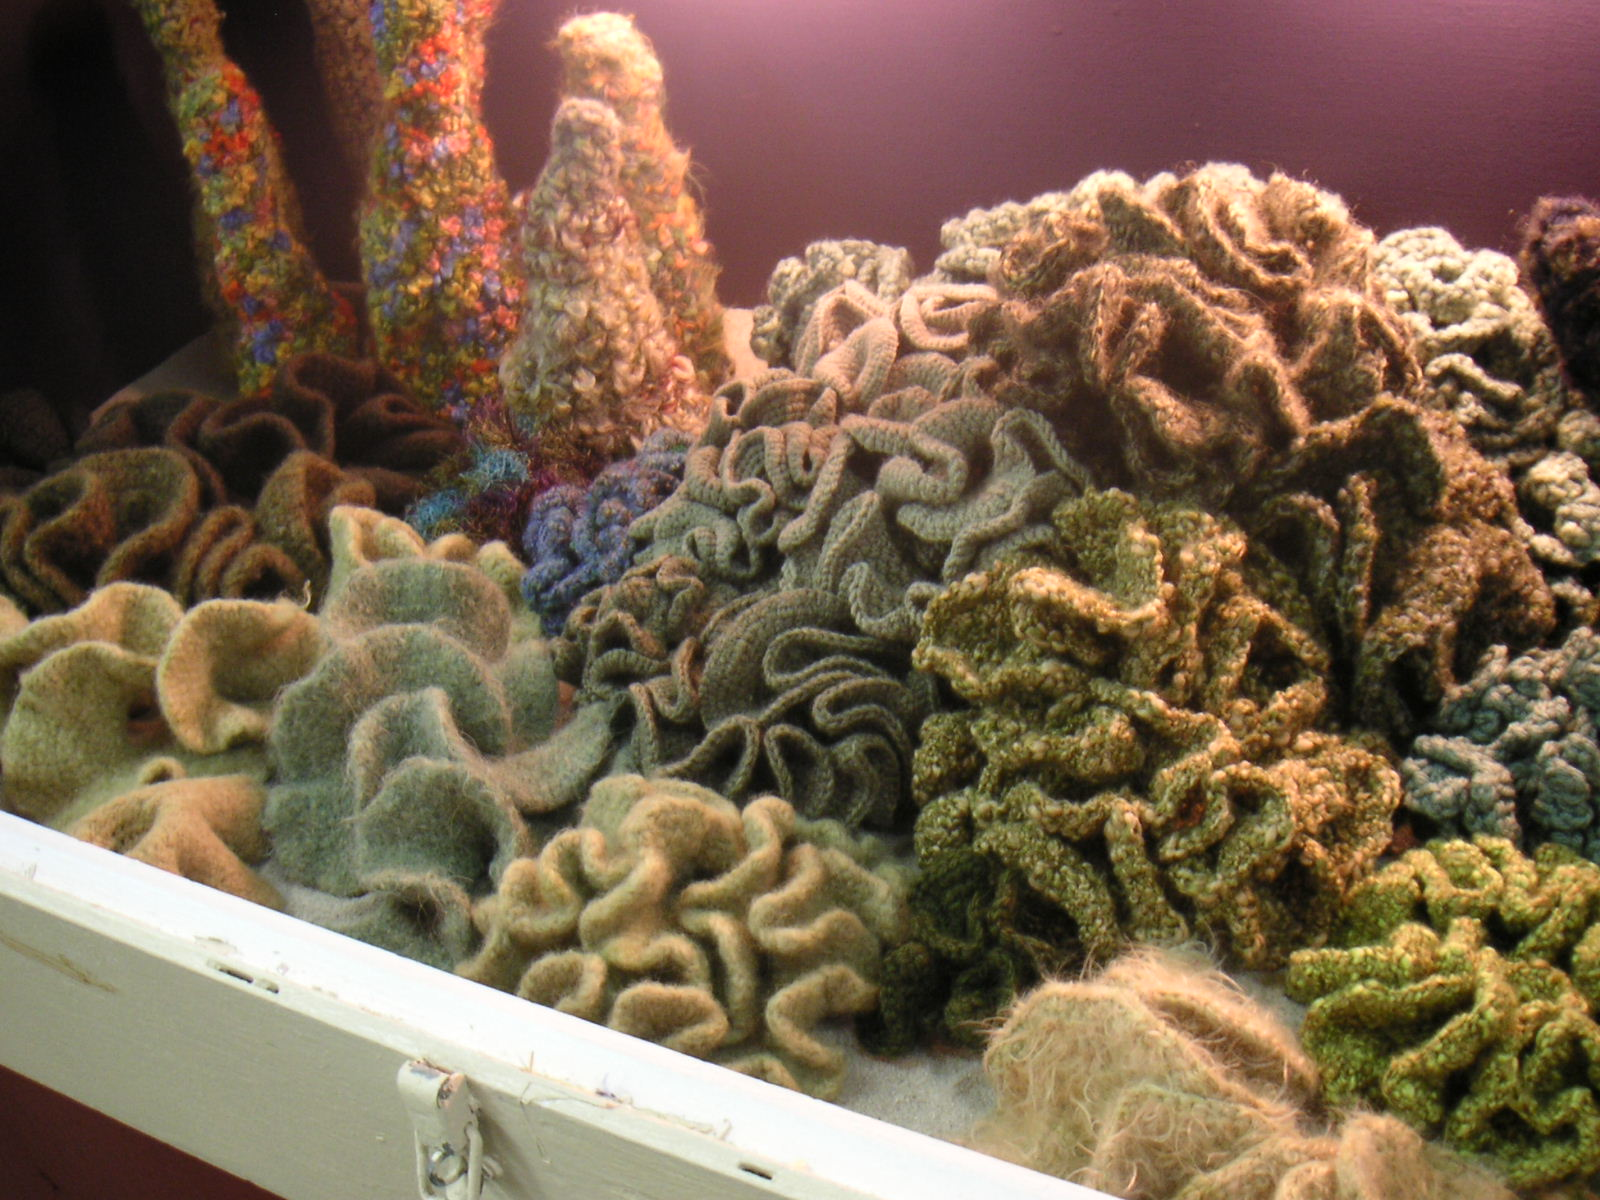 Crocheting Facts : Hyperbolic Crochet Coral Reef Coming to Washington Mathematical ...